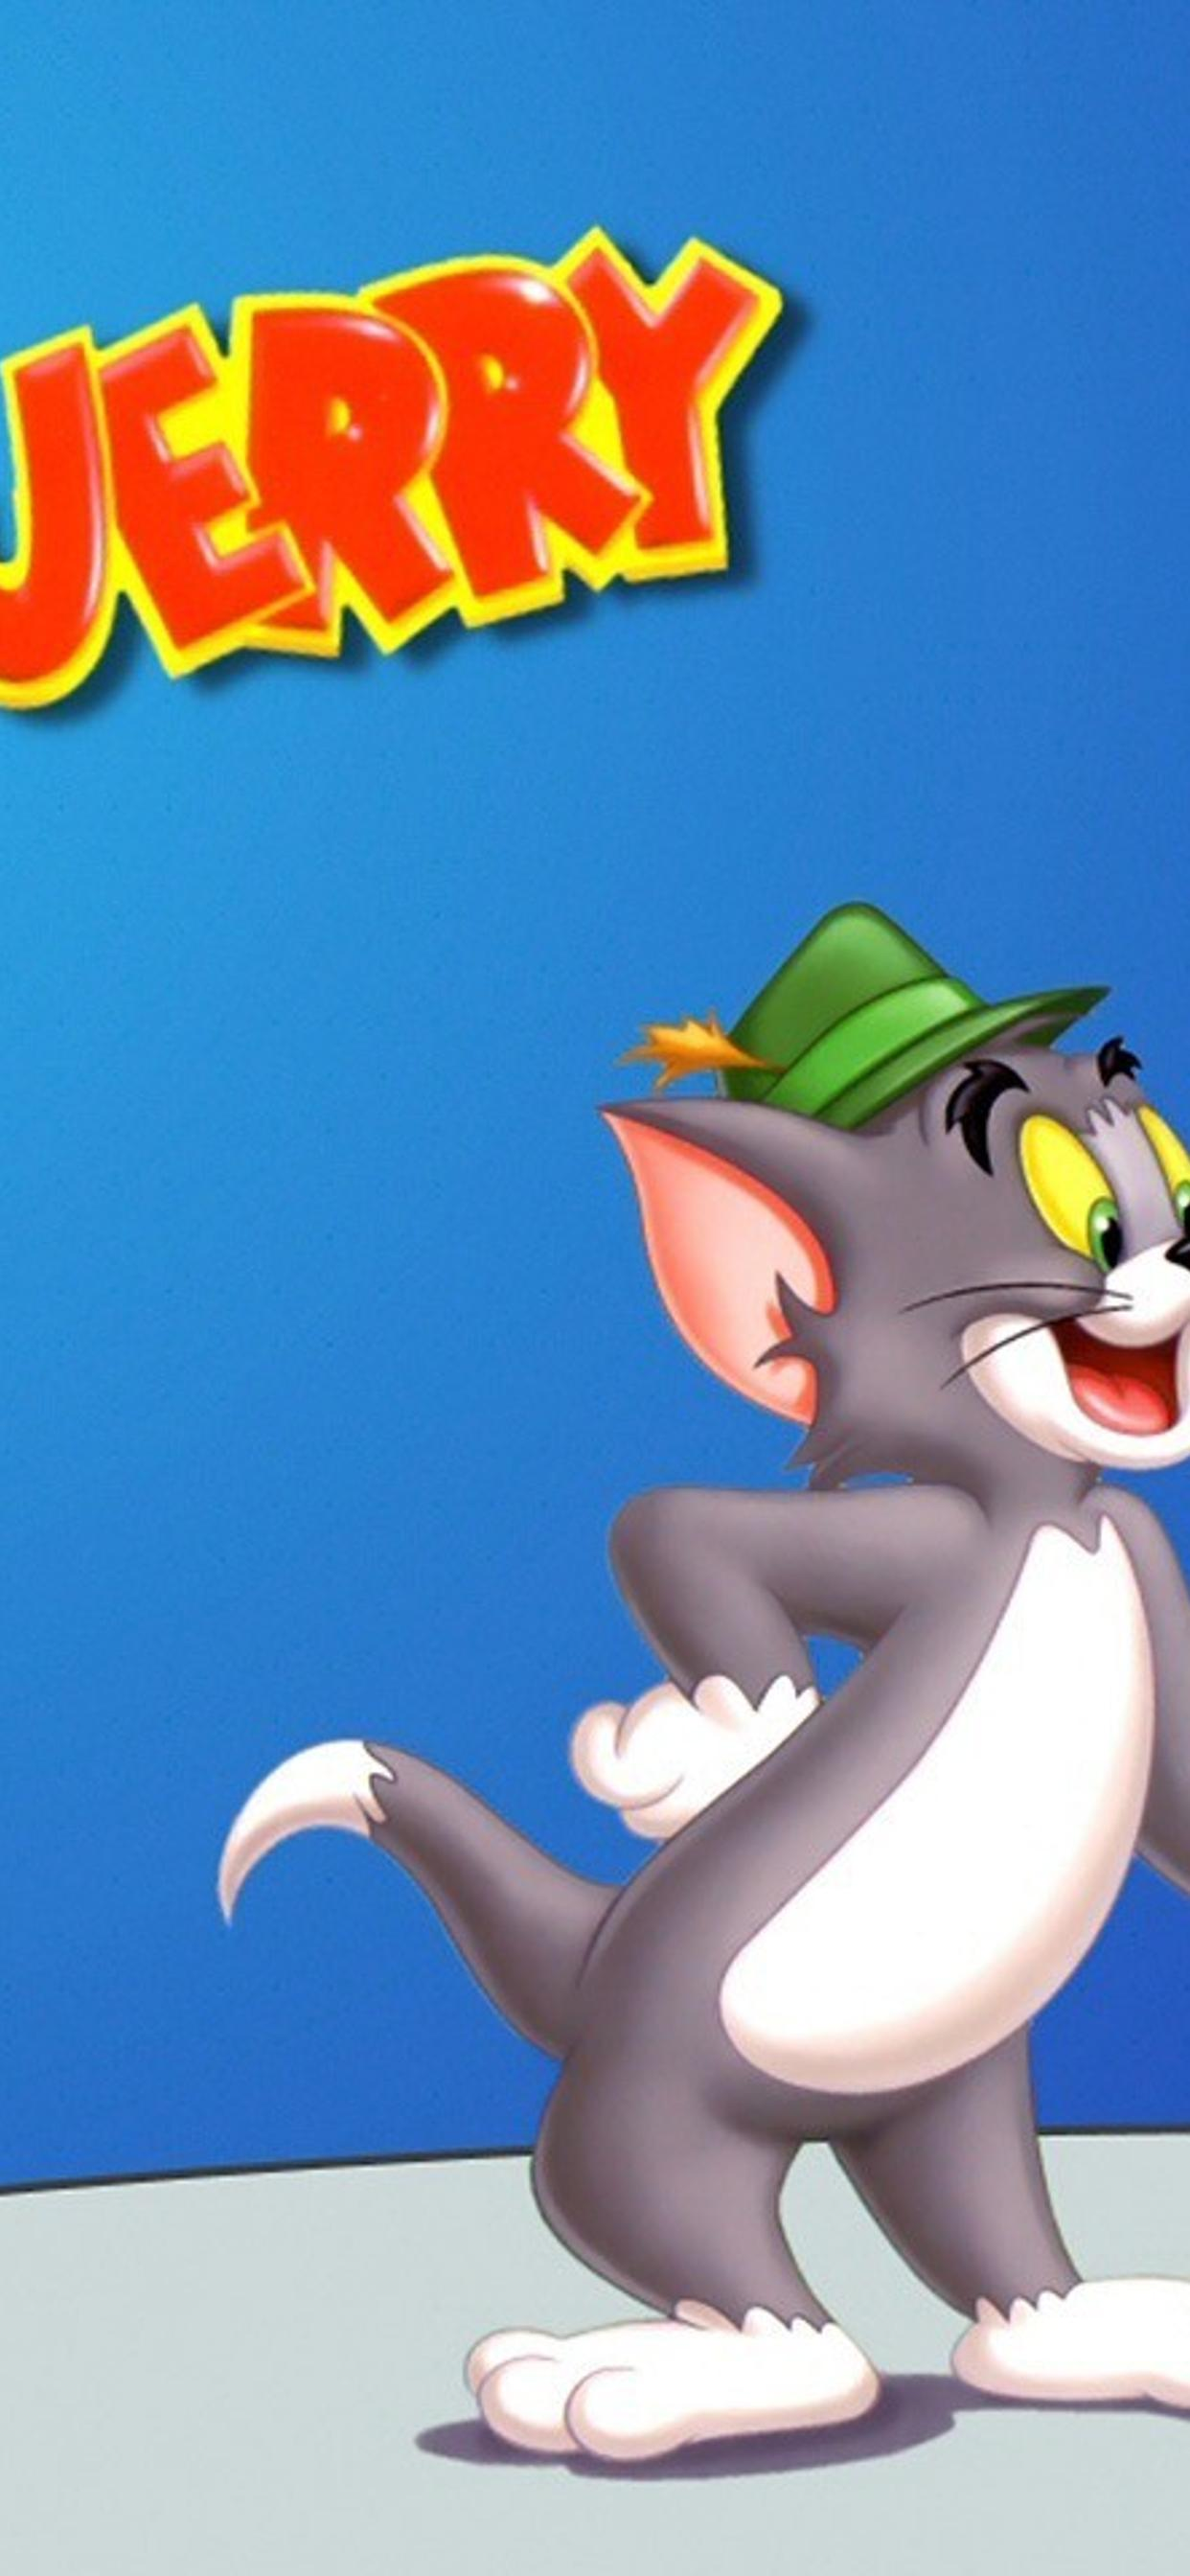 Tom And Jerry Are Friends Cartoon Wallpaper